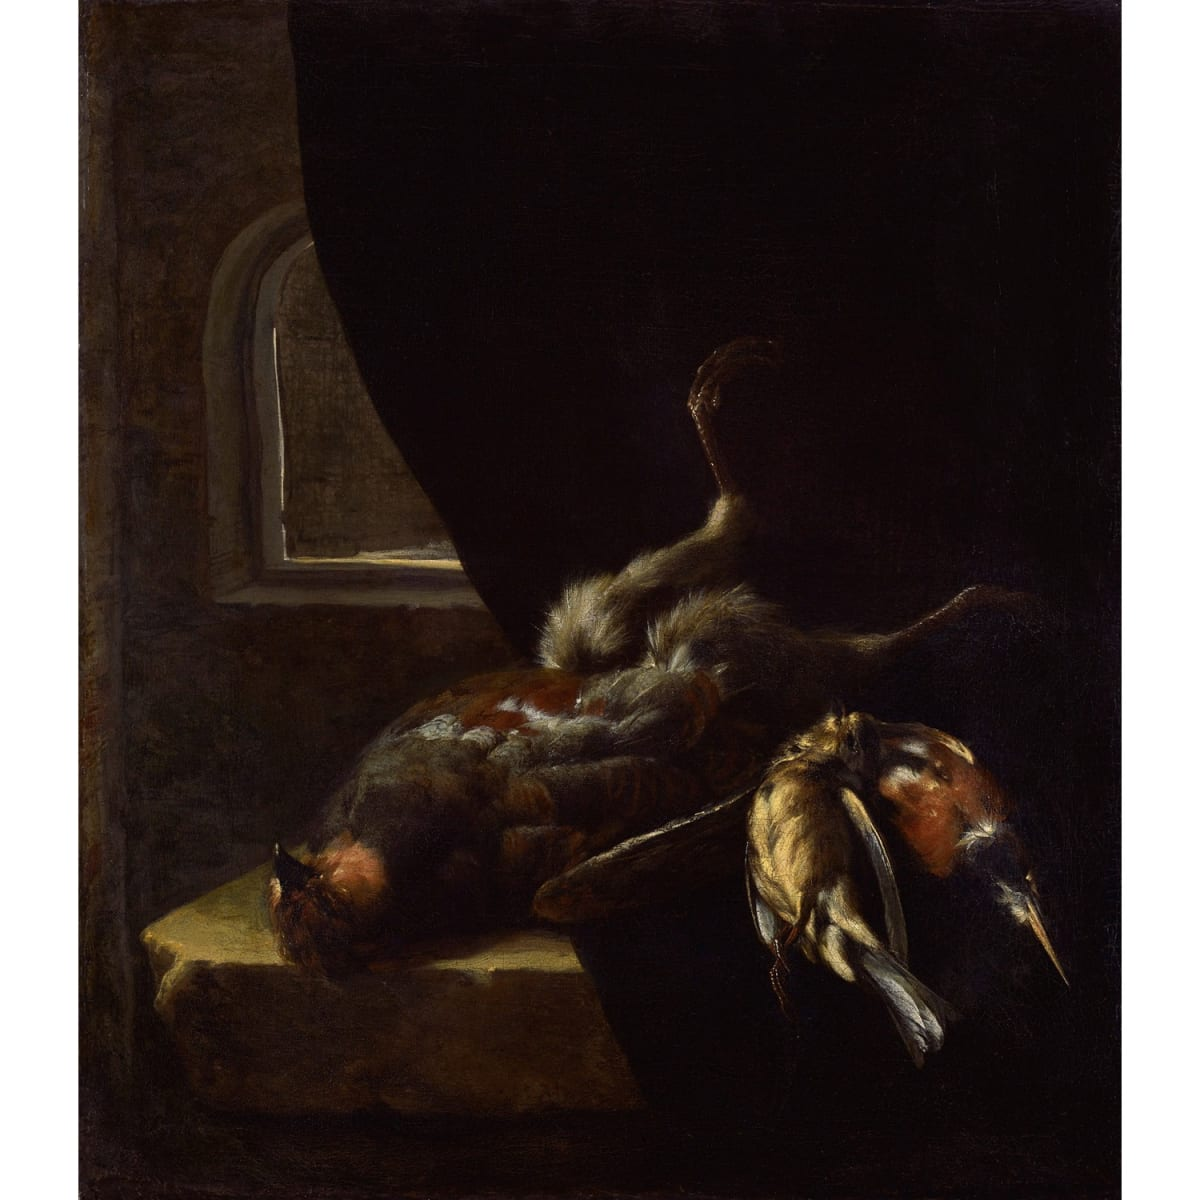 William Gouw Ferguson Still life with game birds oil on canvas 19 3/4 x 17 1/4 inches